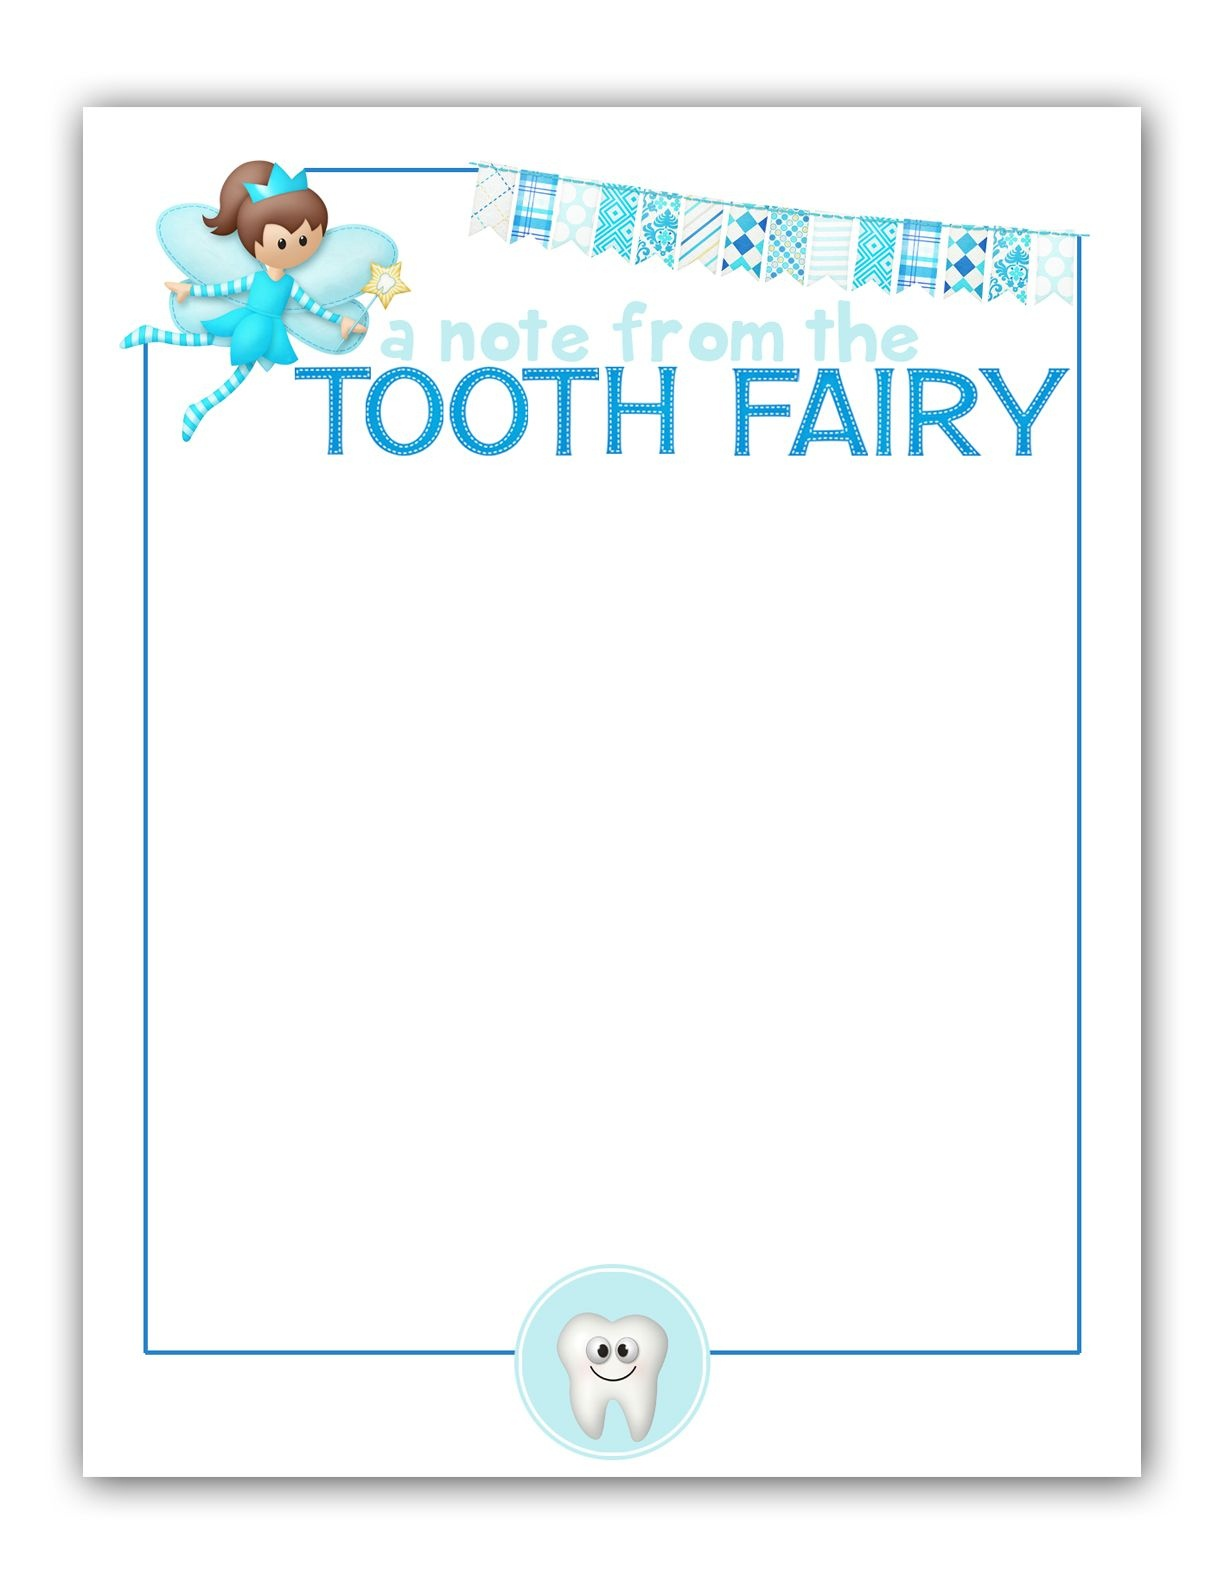 M K Designs Blog: Tooth Fairy Stationary - Free Printable   Tooth - Free Printable Tooth Fairy Pictures